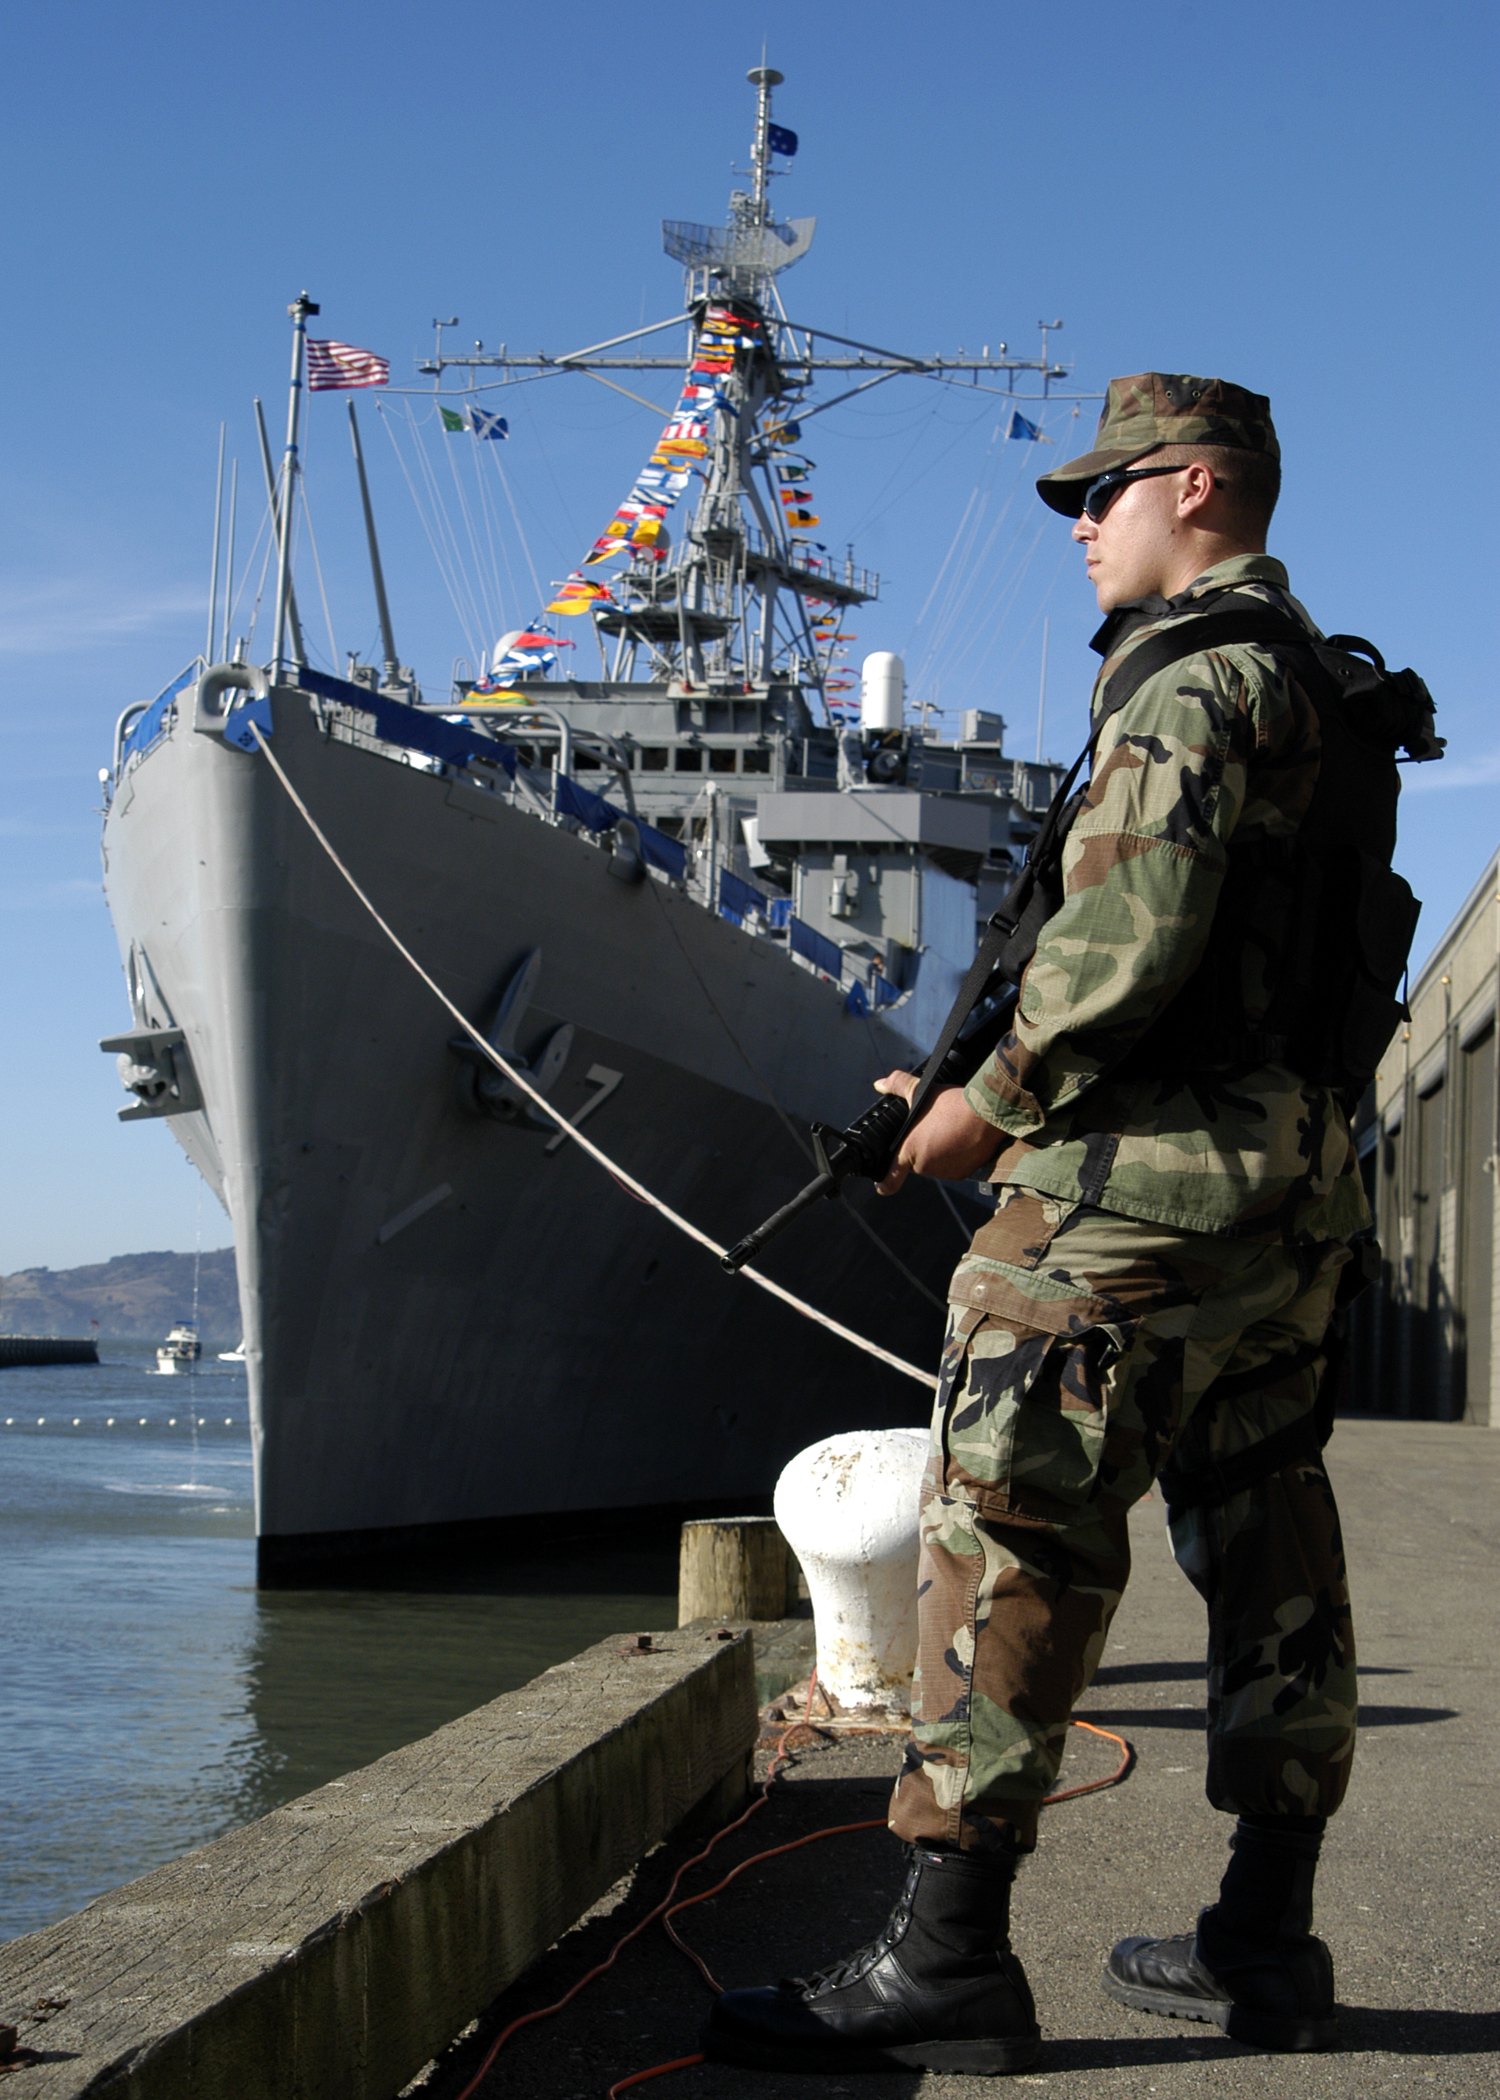 Us Navy Blue Angels >> File:US Navy 031010-N-8029P-002 Master-At-Arms Seaman Travis Slusher stands watch on pier 32 ...